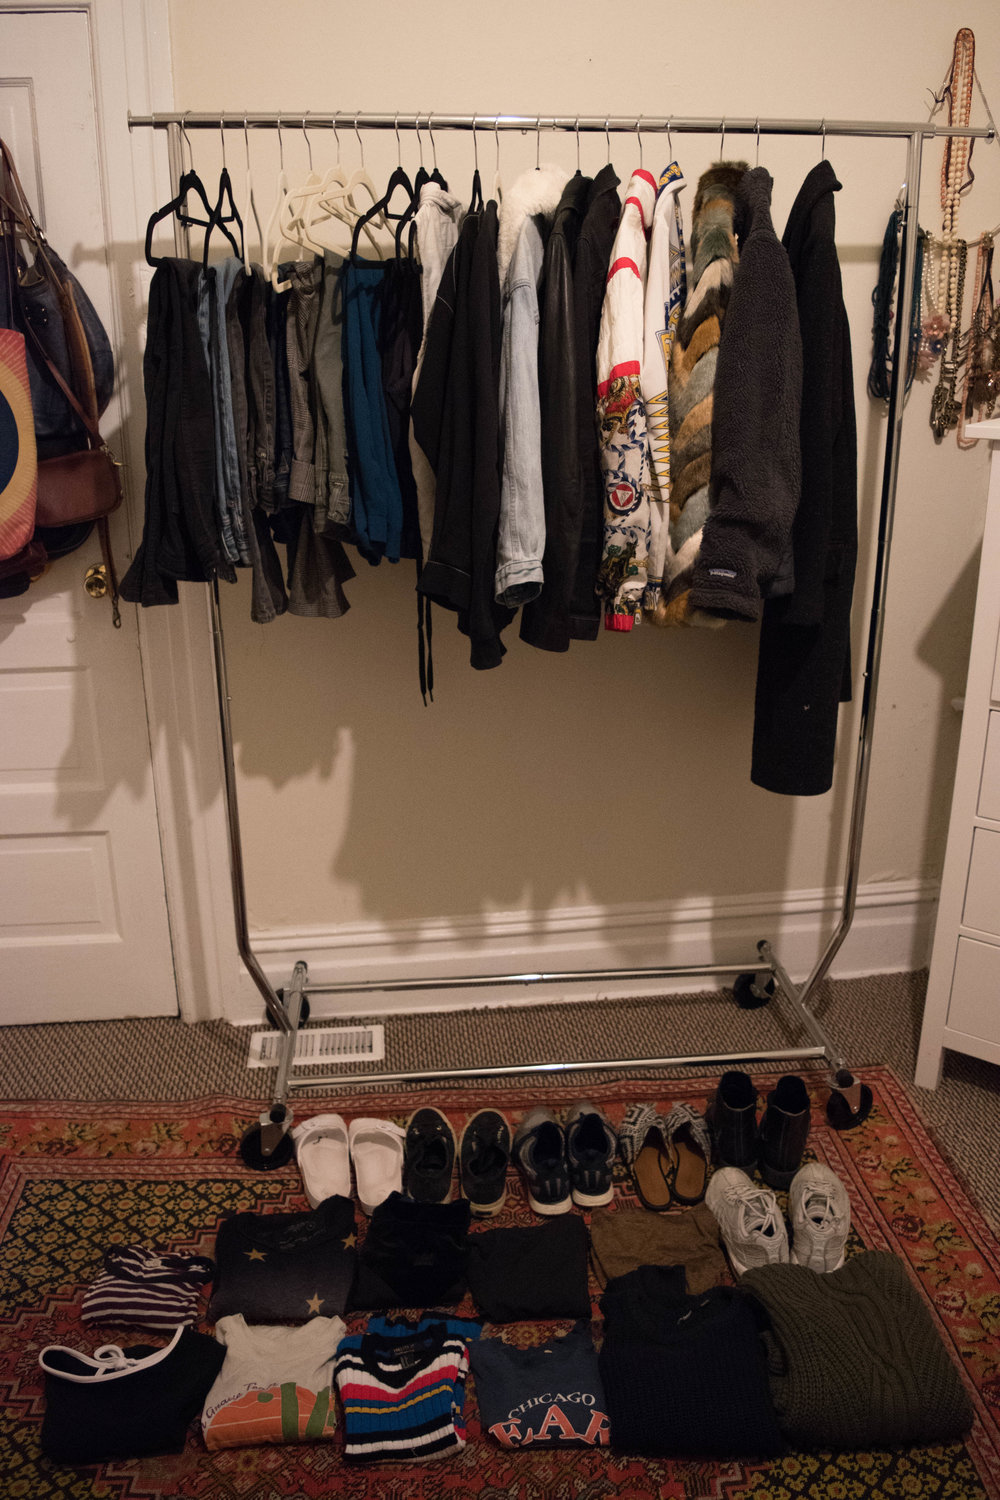 My new wardrobe (and hopefully the clothes I will be excited to wear)!